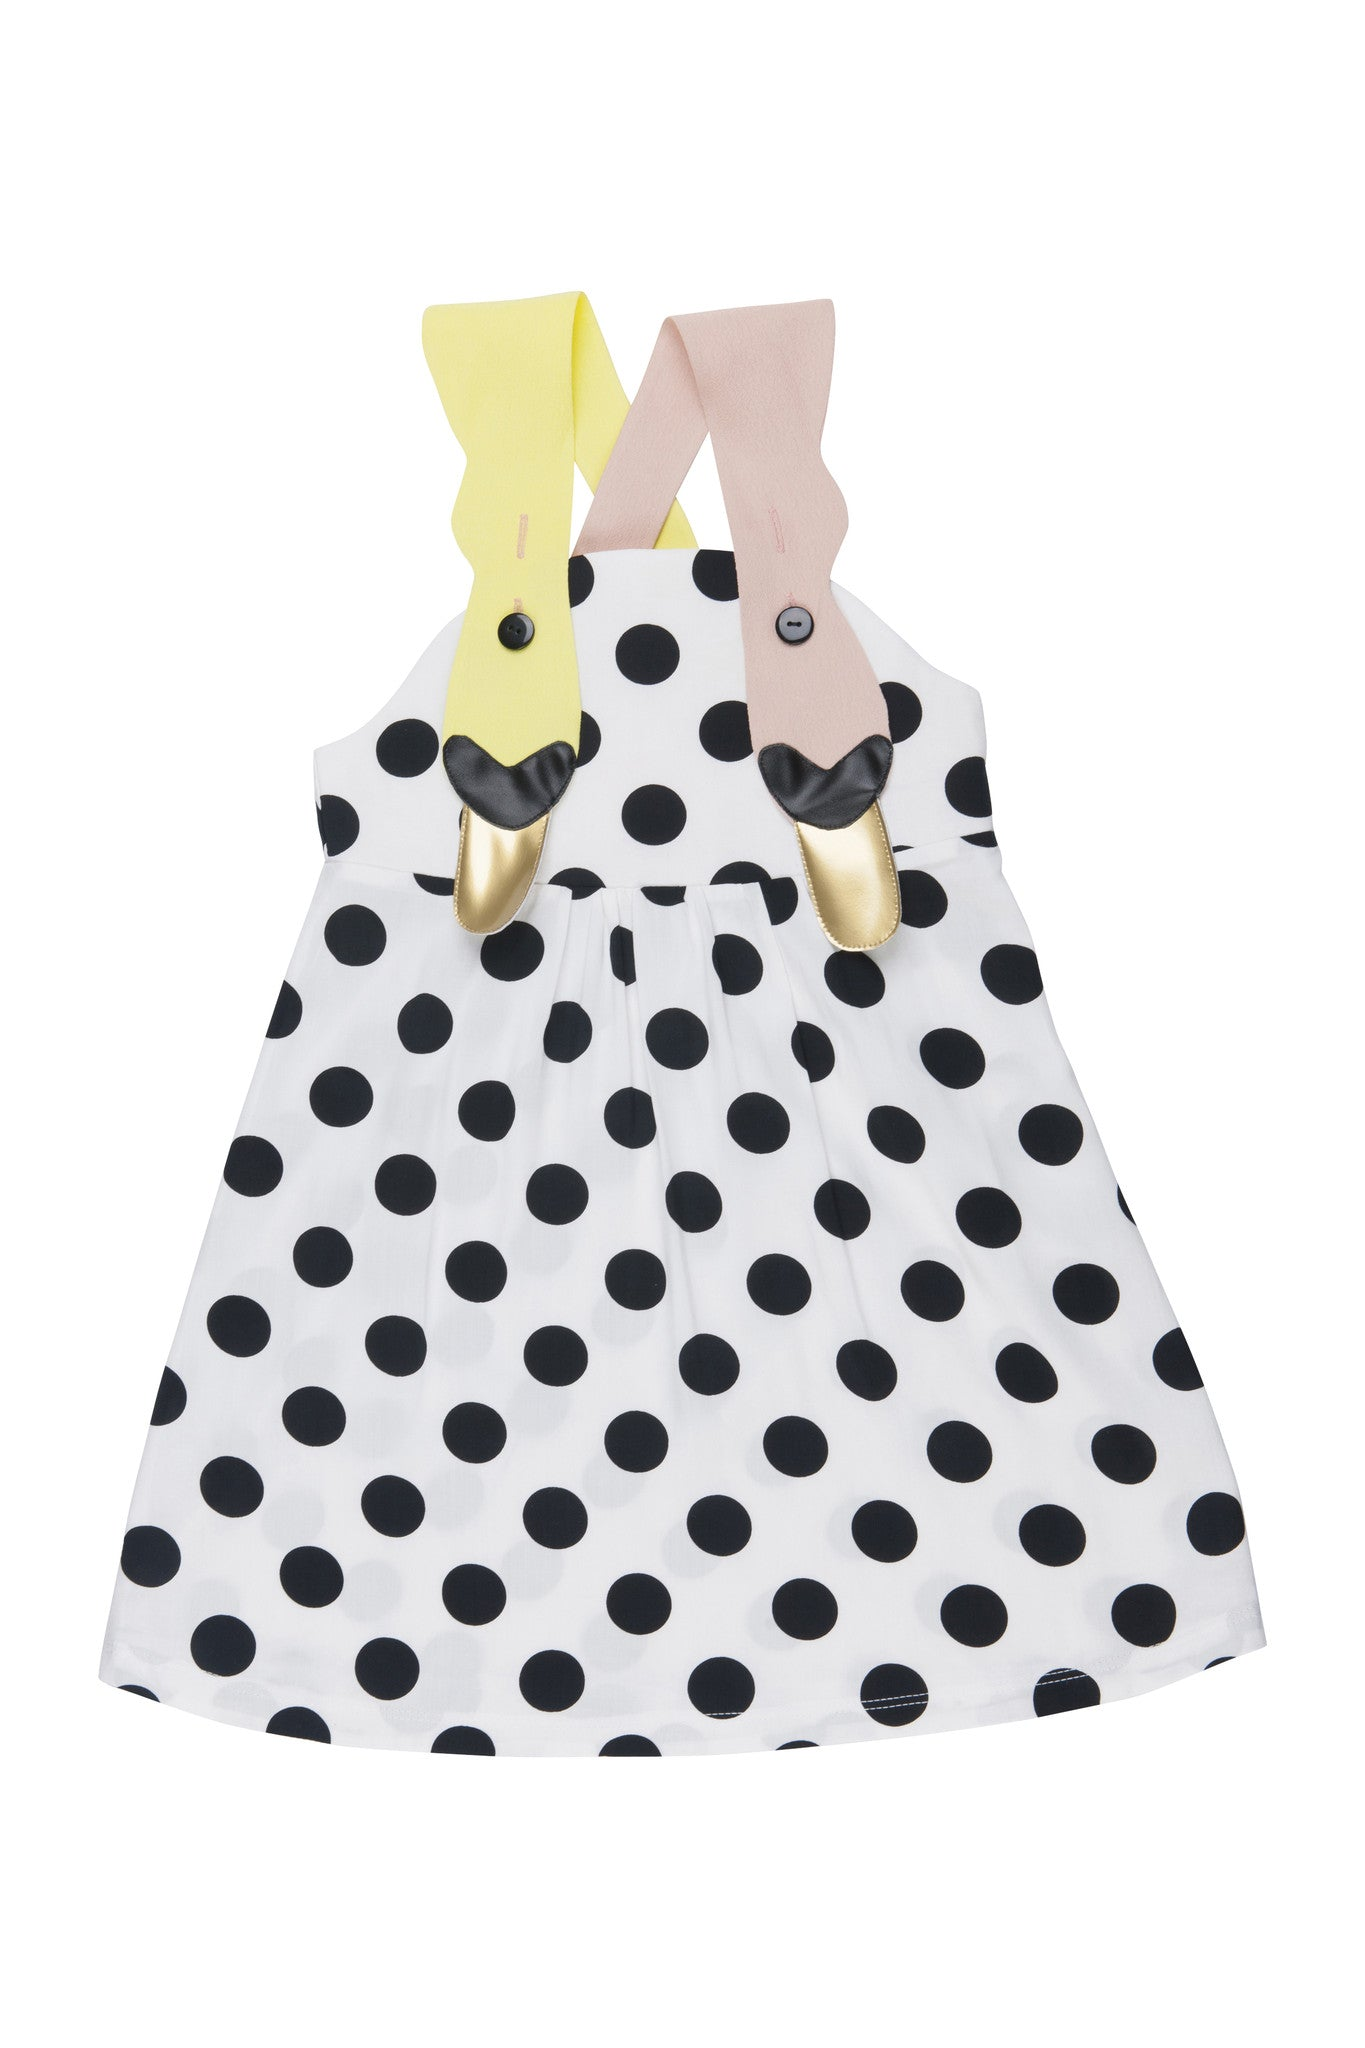 Bang Bang Sunshine Dot Dress - Ladida